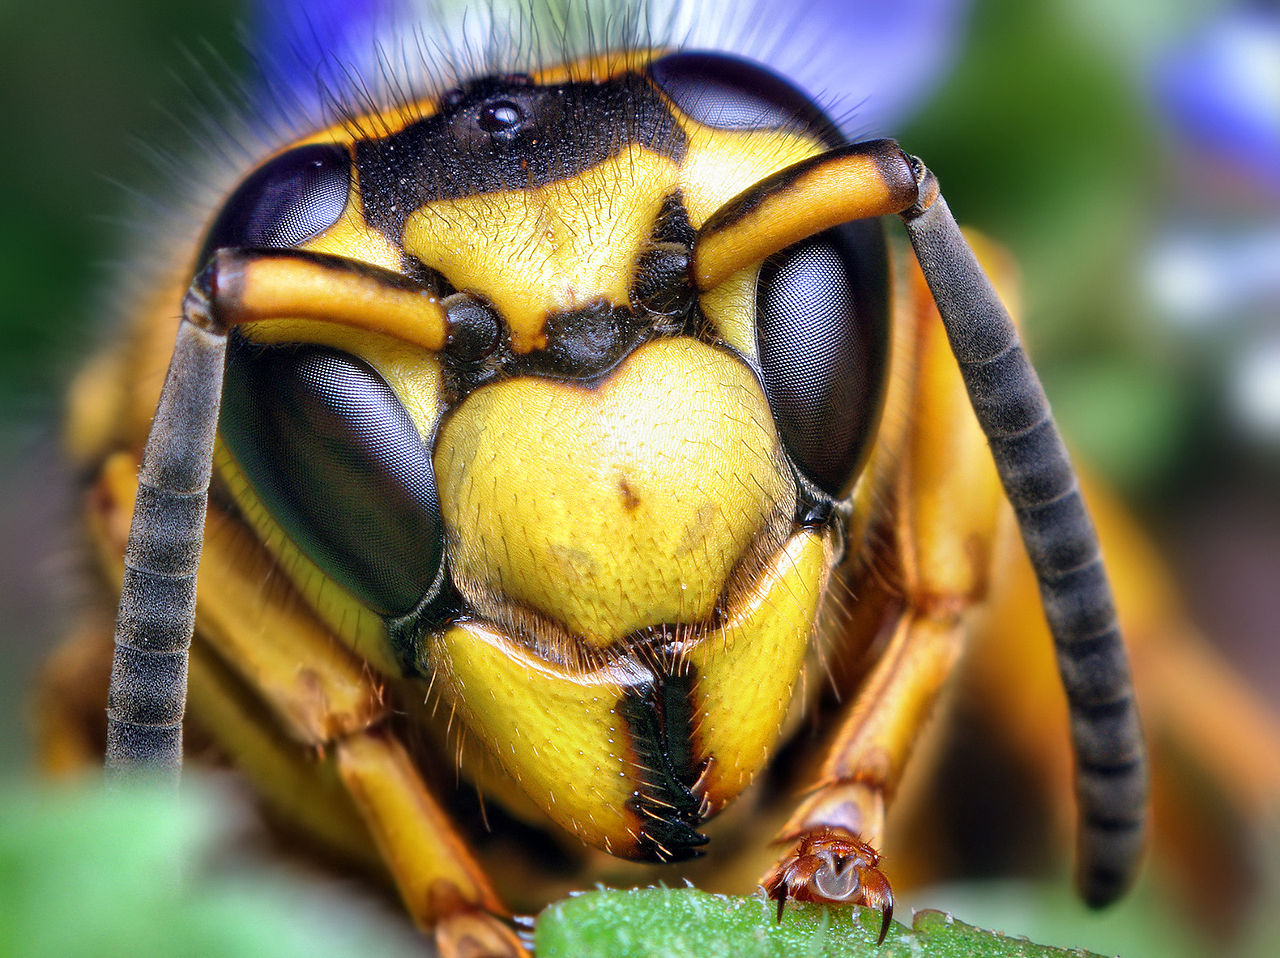 File:Face of a Southern Yellowjacket Queen (Vespula squamosa).jpg